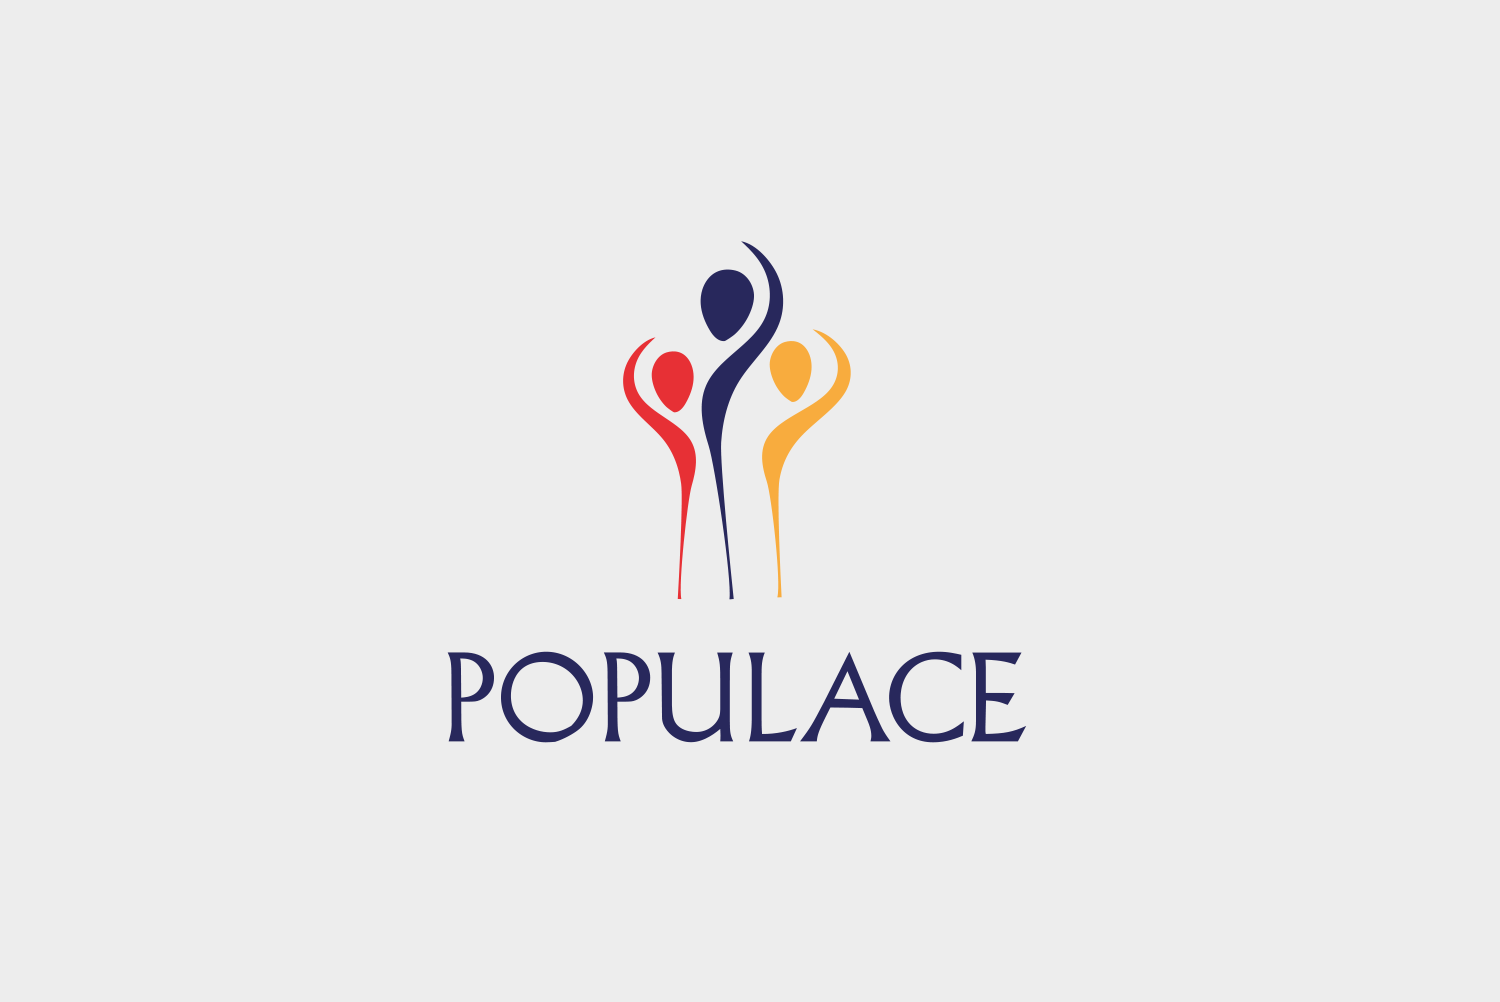 Populace-2